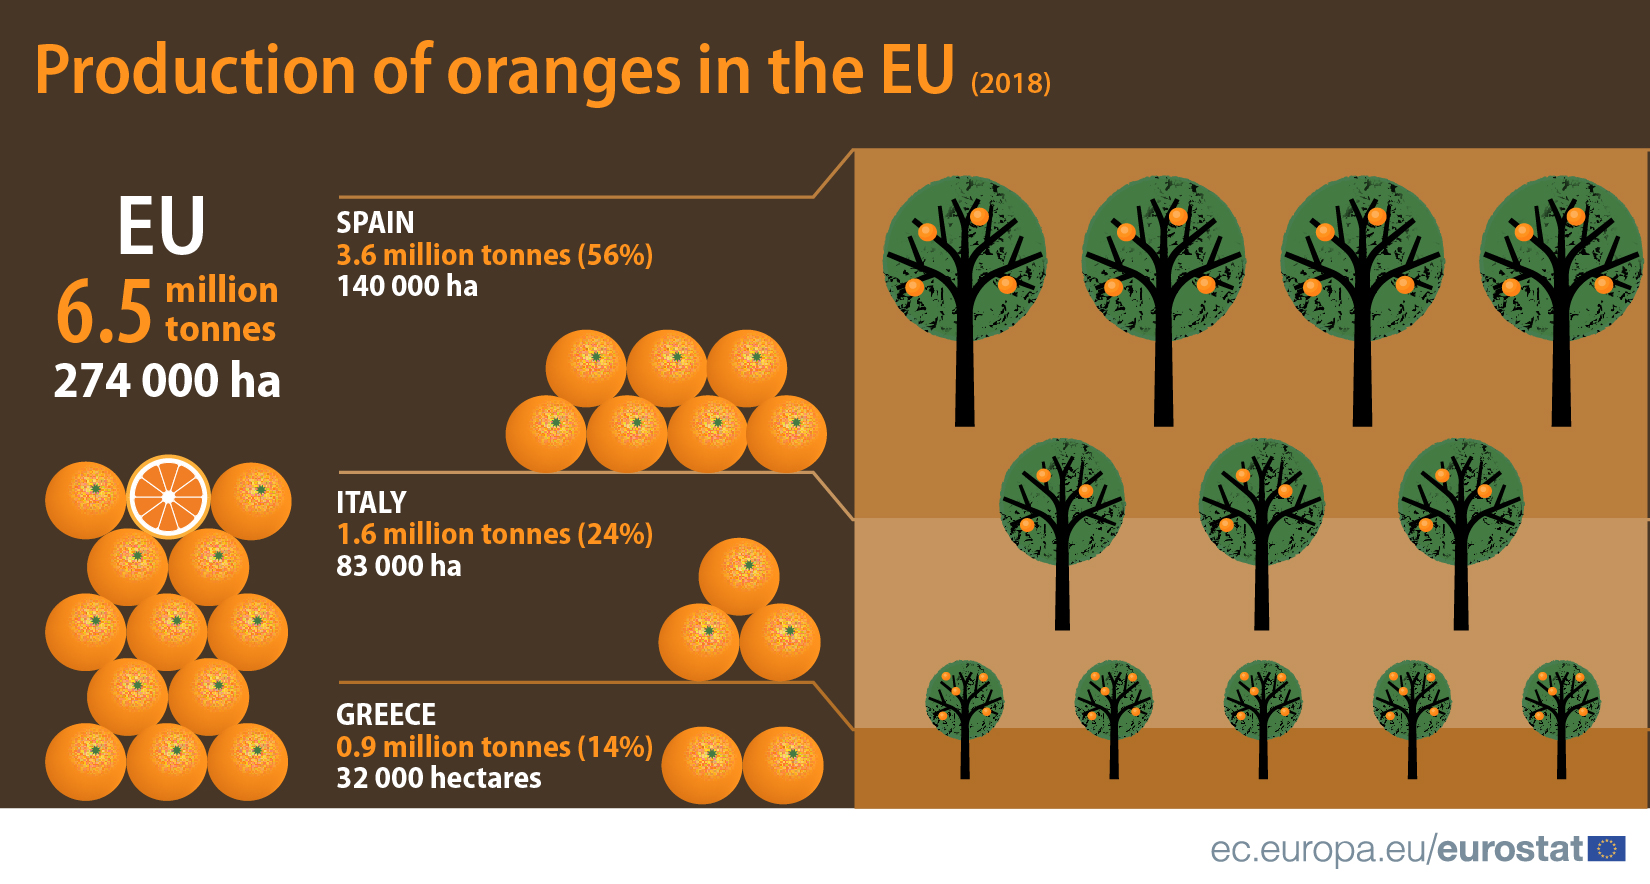 Oranges production in the EU, 2018